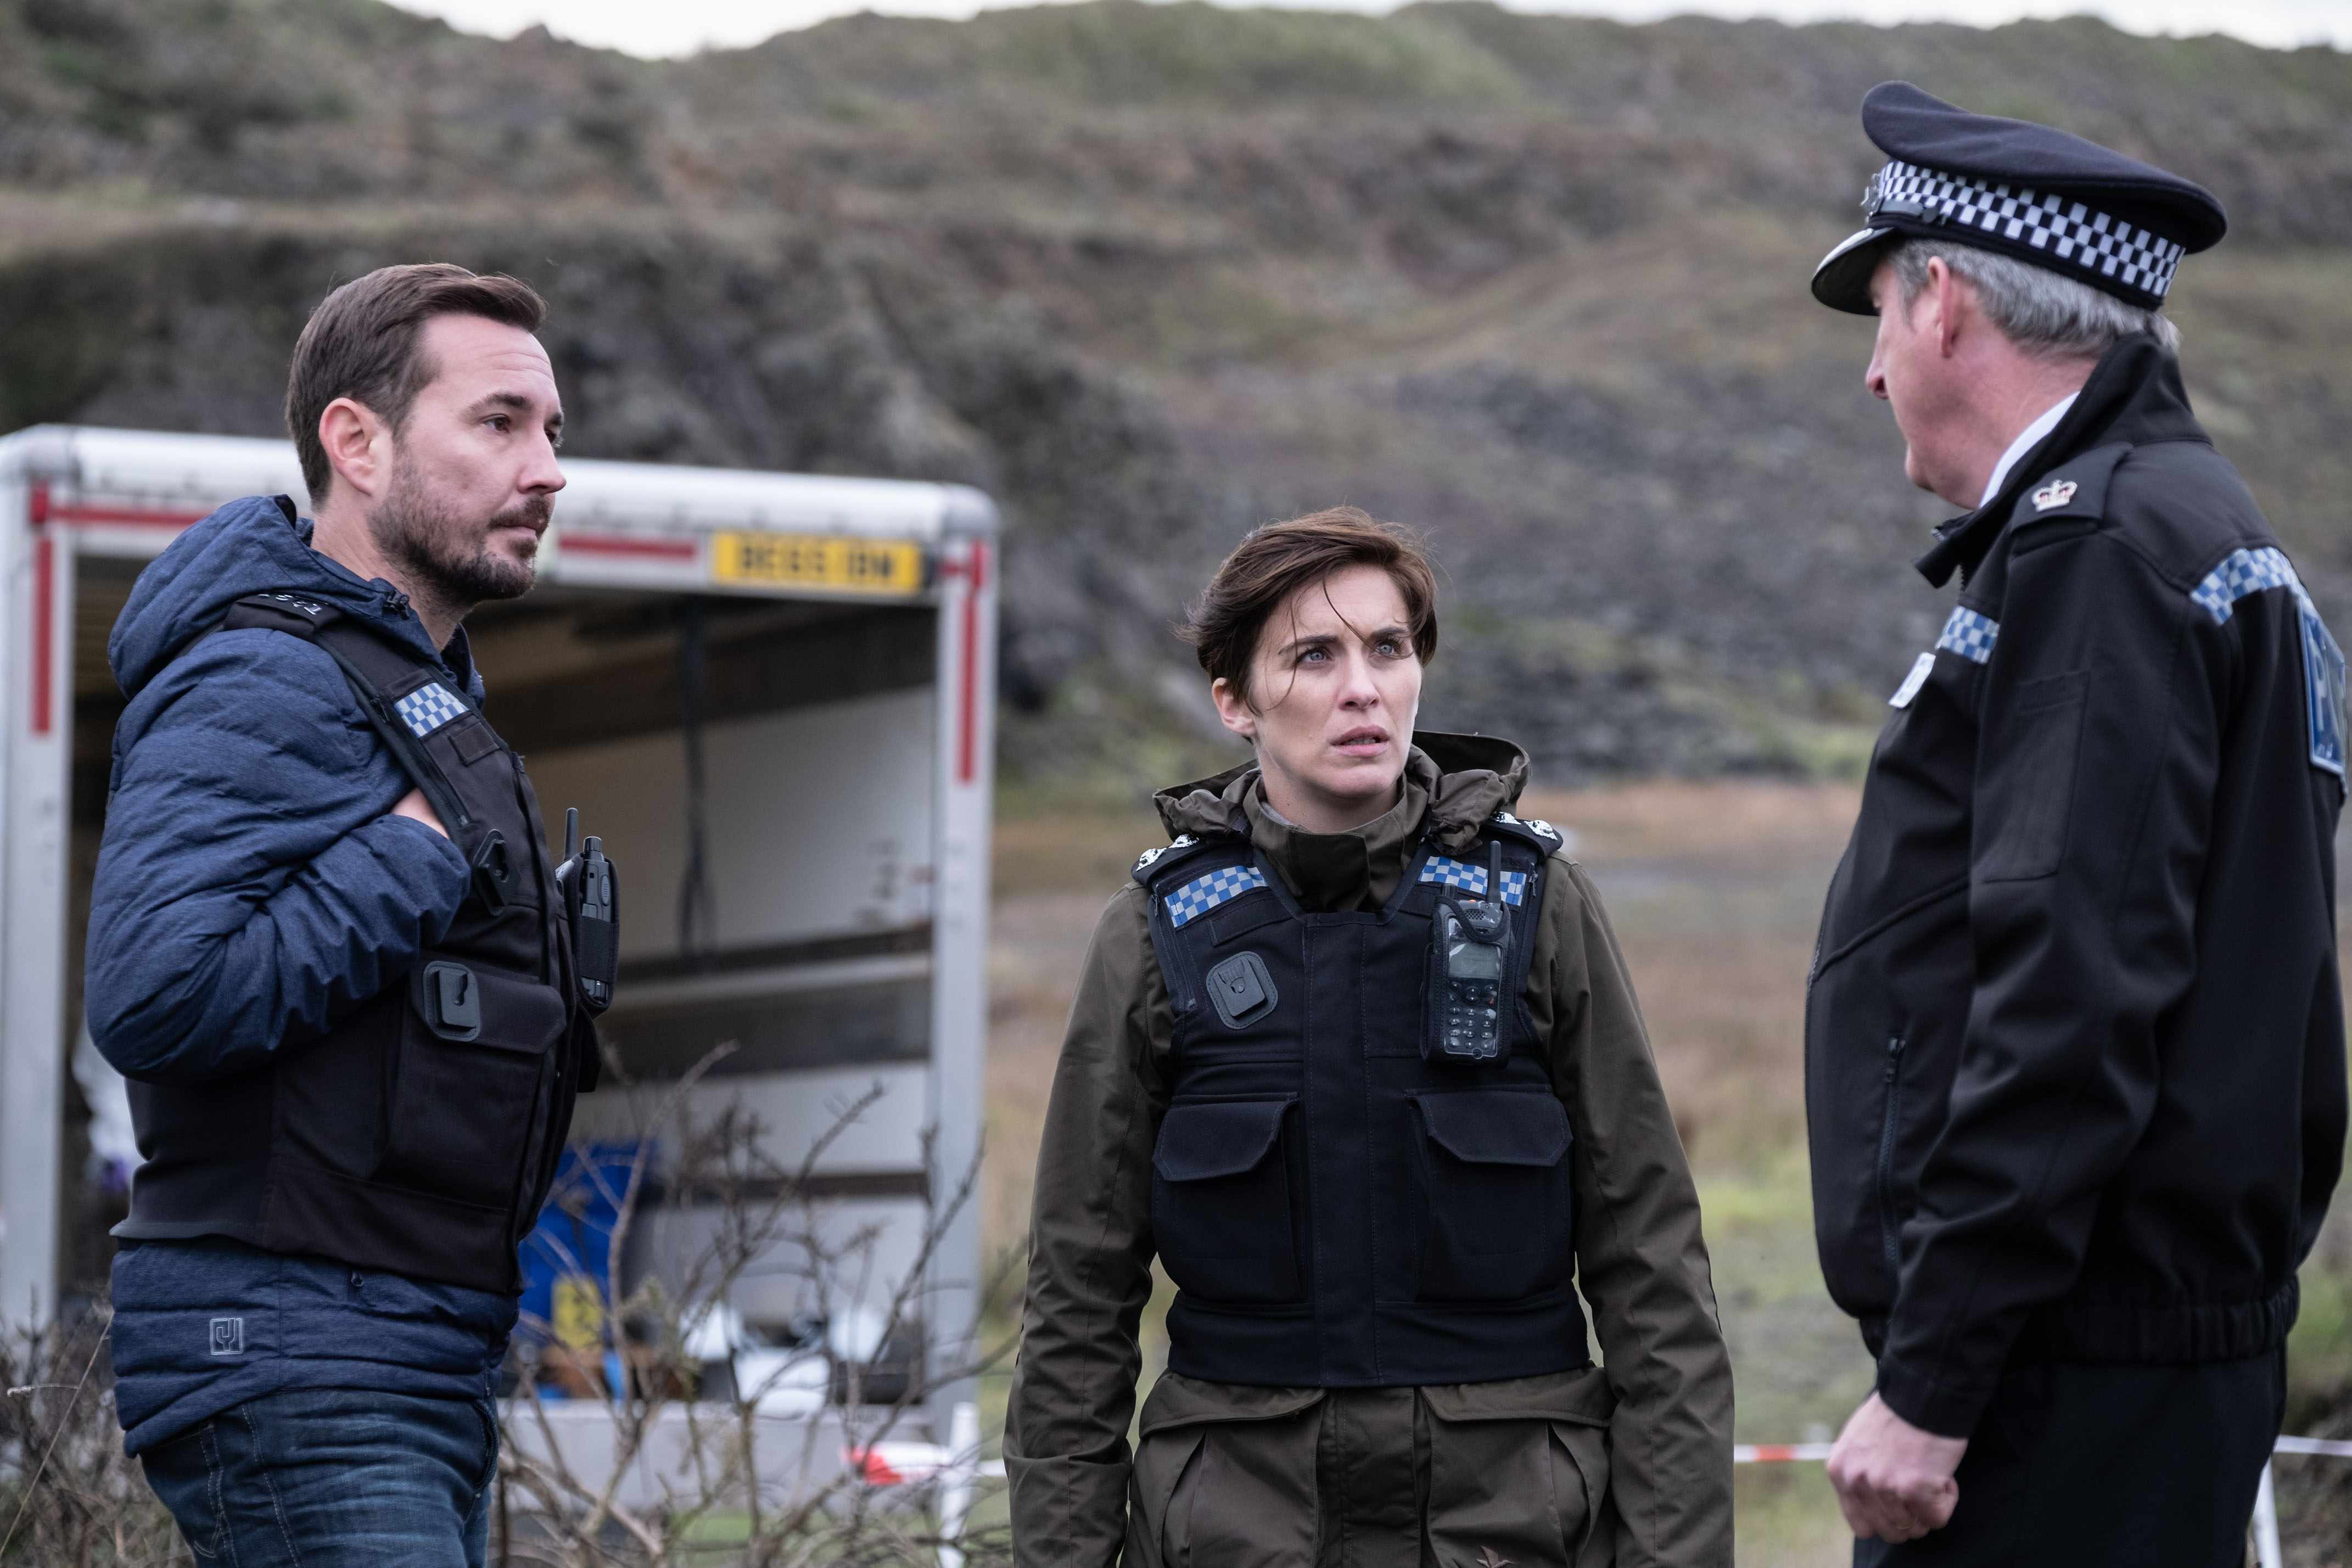 WARNING: Embargoed for publication until 00:00:01 on 09/04/2019 - Programme Name: Line of Duty - Series 5 - TX: 14/04/2019 - Episode: Line of Duty S5 - episode 3 (No. 3) - Picture Shows: ***EMBARGOED TILL 00:01 TUESDAY 9TH APRIL 2019*** Steve (MARTIN COMPSTON), Kate (VICKY MCCLURE), Hastings (ADRIAN DUNBAR) - (C) World Productions - Photographer: Peter Marley